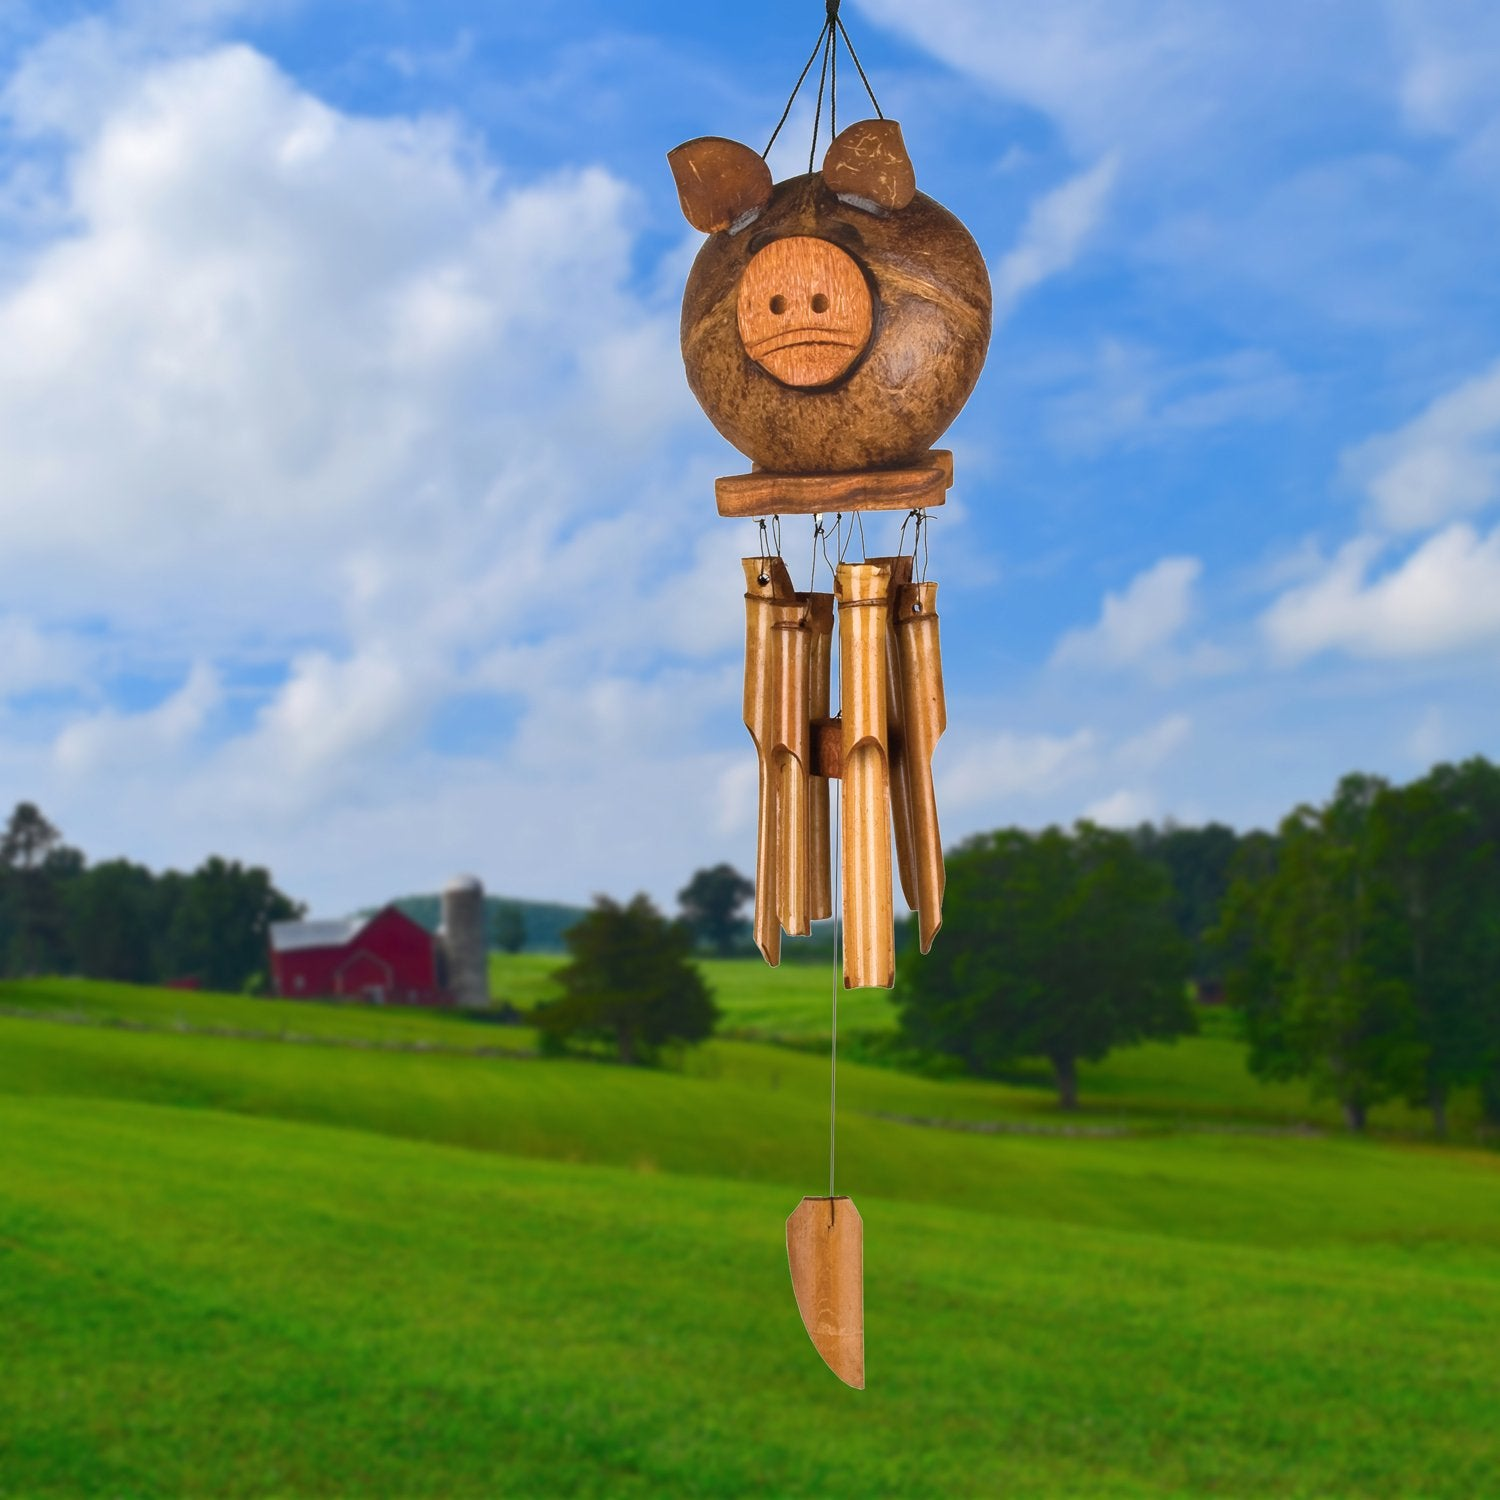 Coco Pig Bamboo Chime lifestyle image